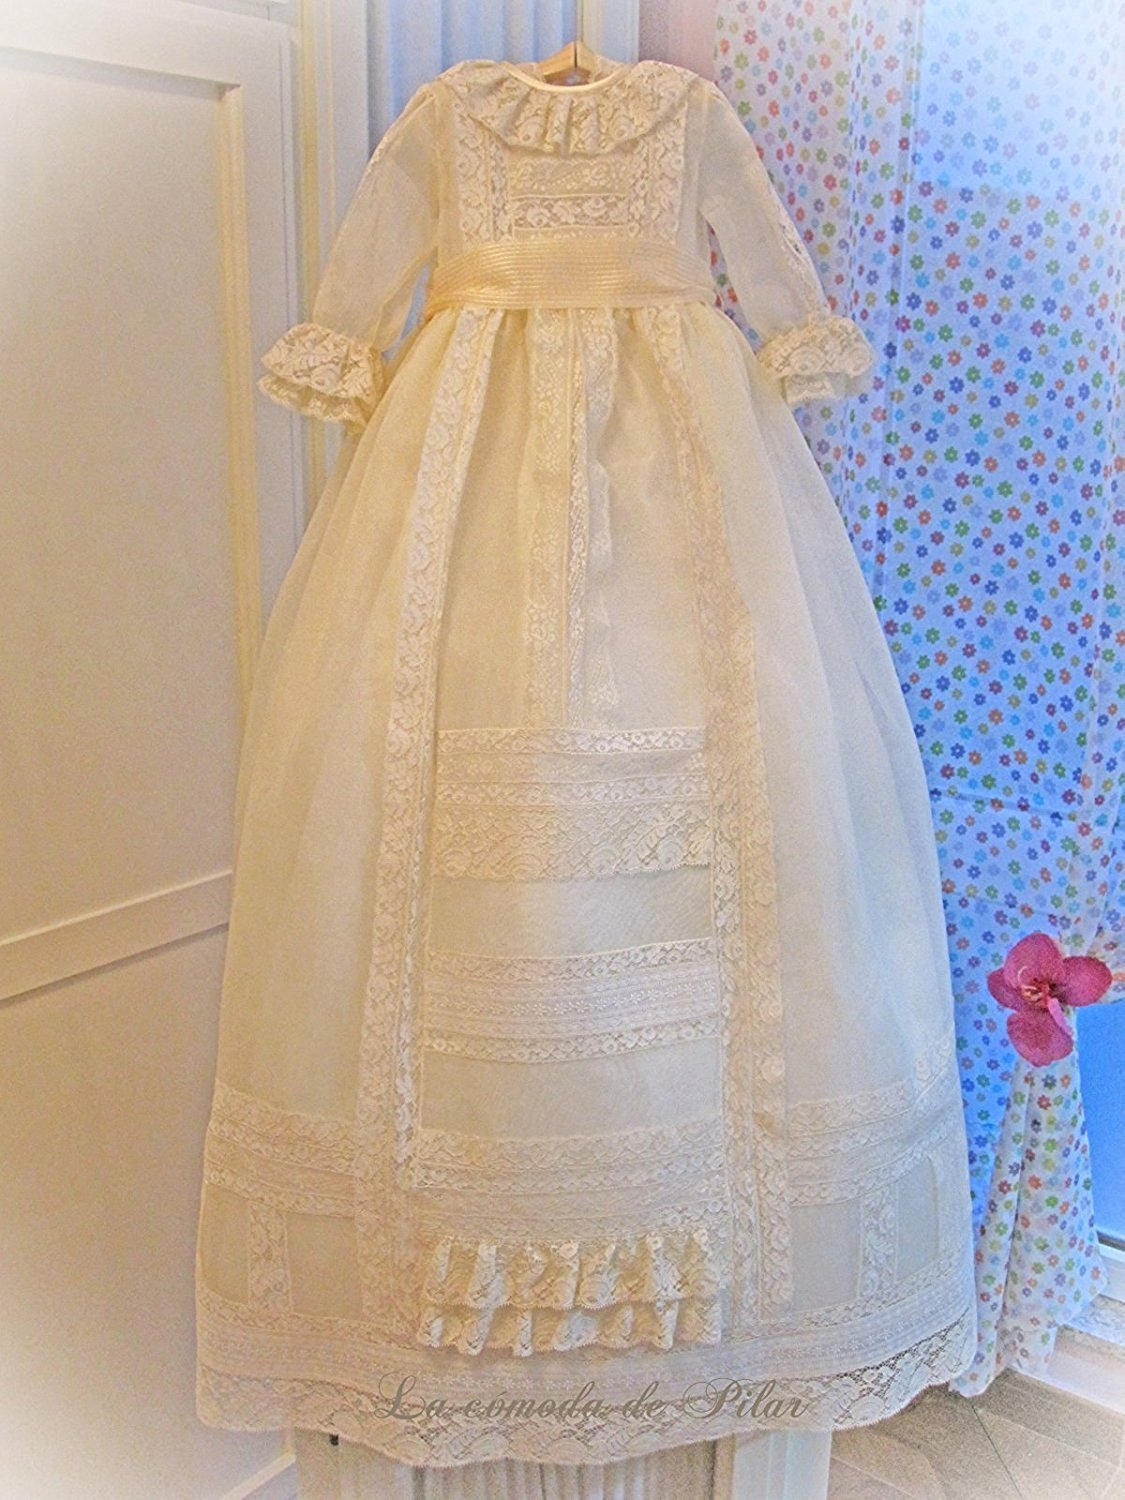 Banfvting Lace Long Baby Girls Dress Christening Gowns With Sleeves by Banfvting (Image #2)